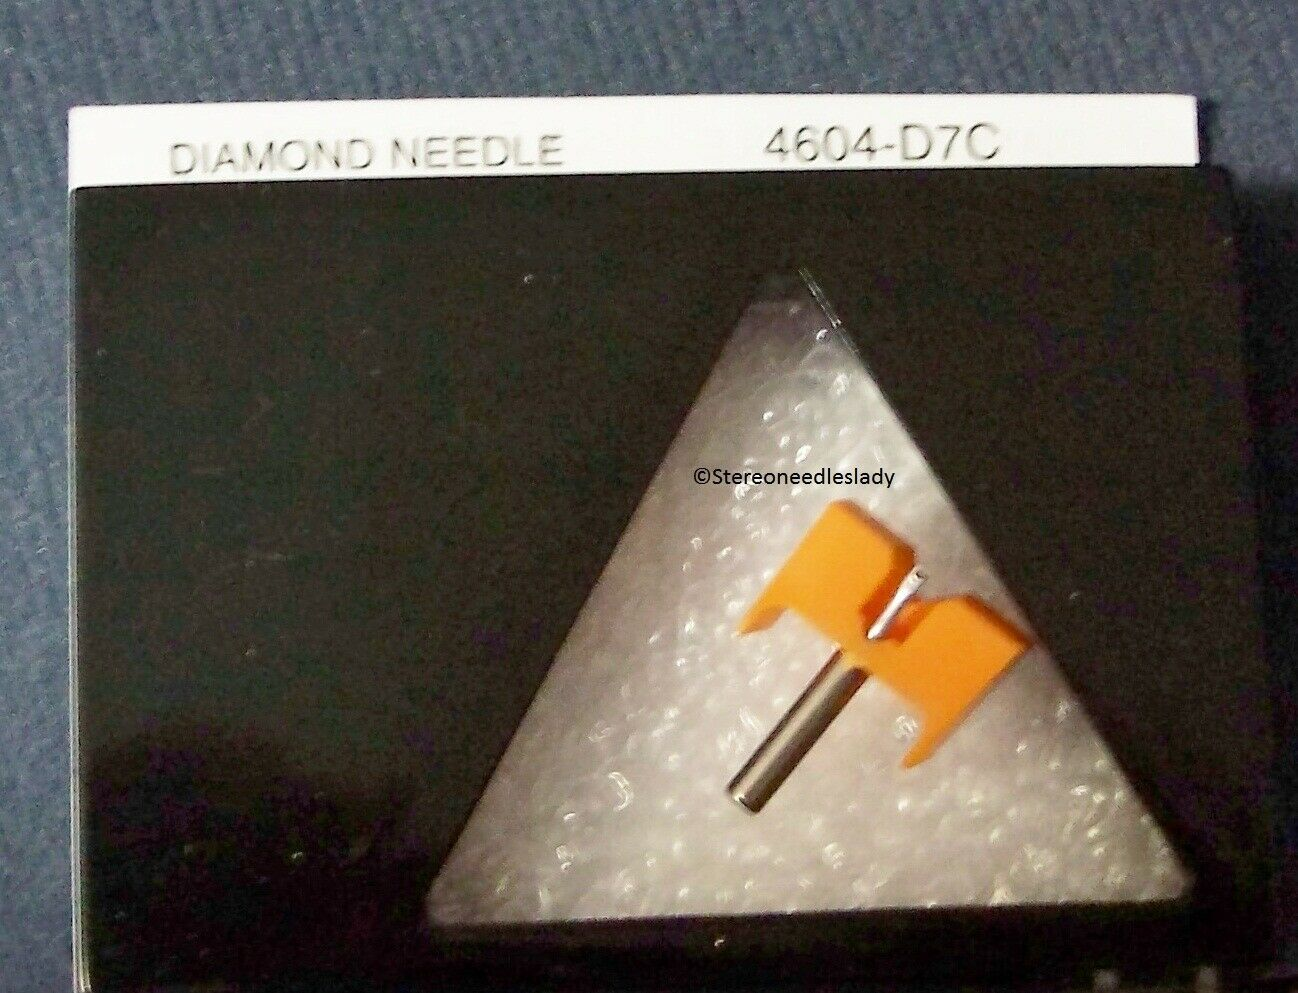 NEEDLE STYLUS for PICKERING PD07C DAT2 V15/AC2 V15/AT1 DAC2 Pfanstiehl 4604-D7C